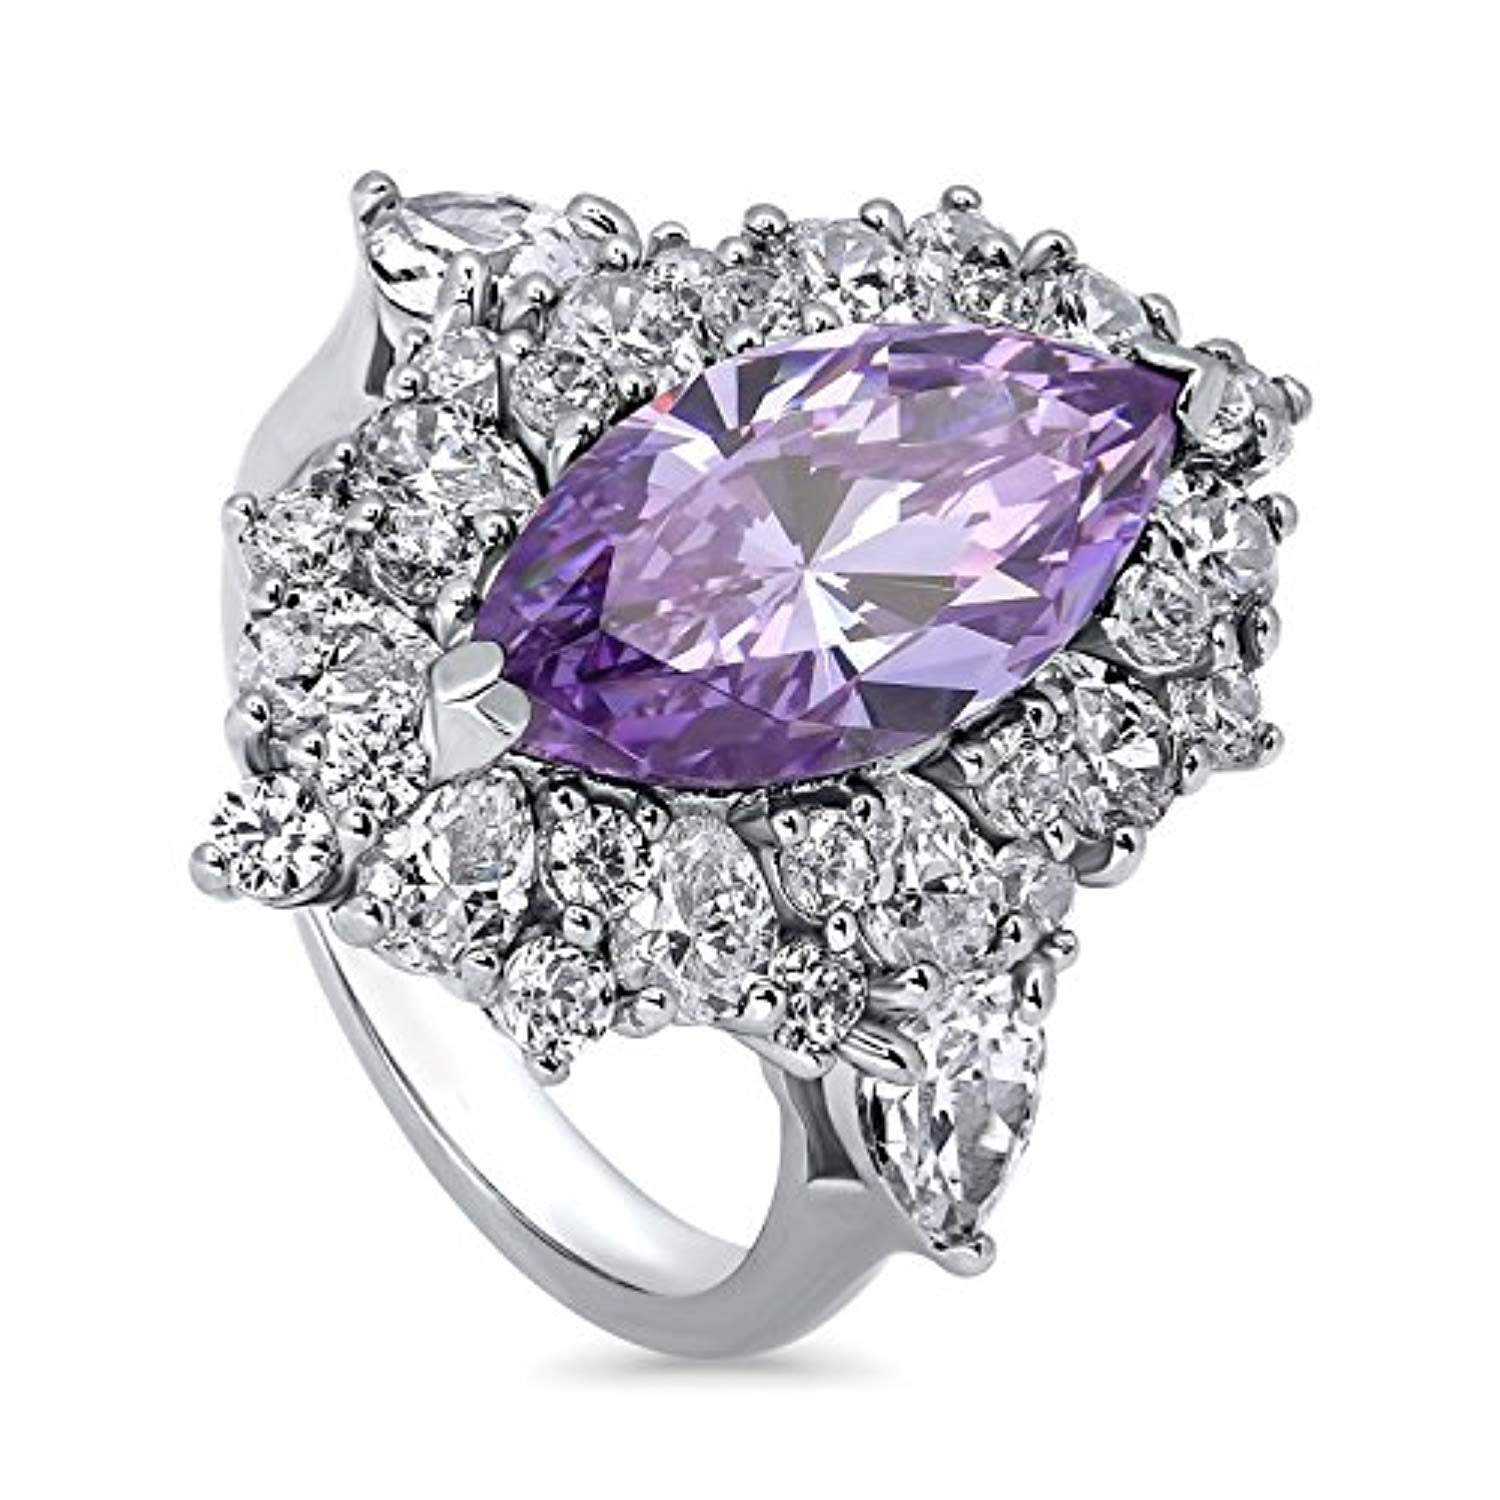 Rhodium Plated Sterling Silver Purple Marquise Cut Cubic Zirconia CZ Statement Halo Cocktail Fashion Right Hand Ring